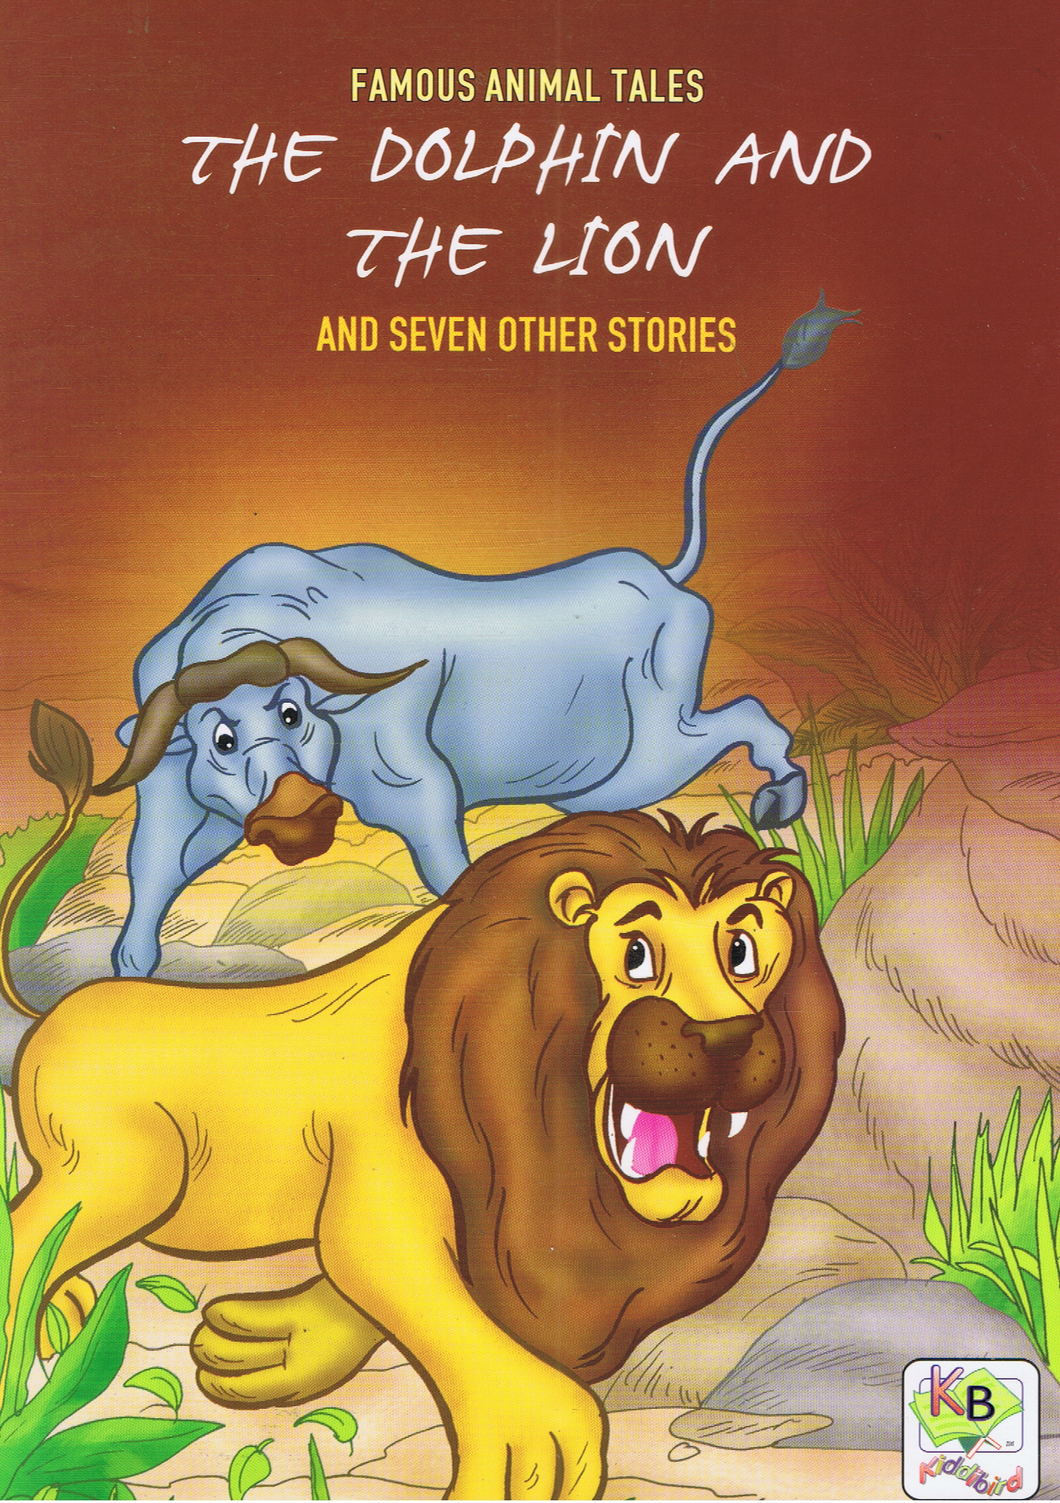 Famous Animal Tales: The Dolphin Snd The Lion And Seven Other Stories